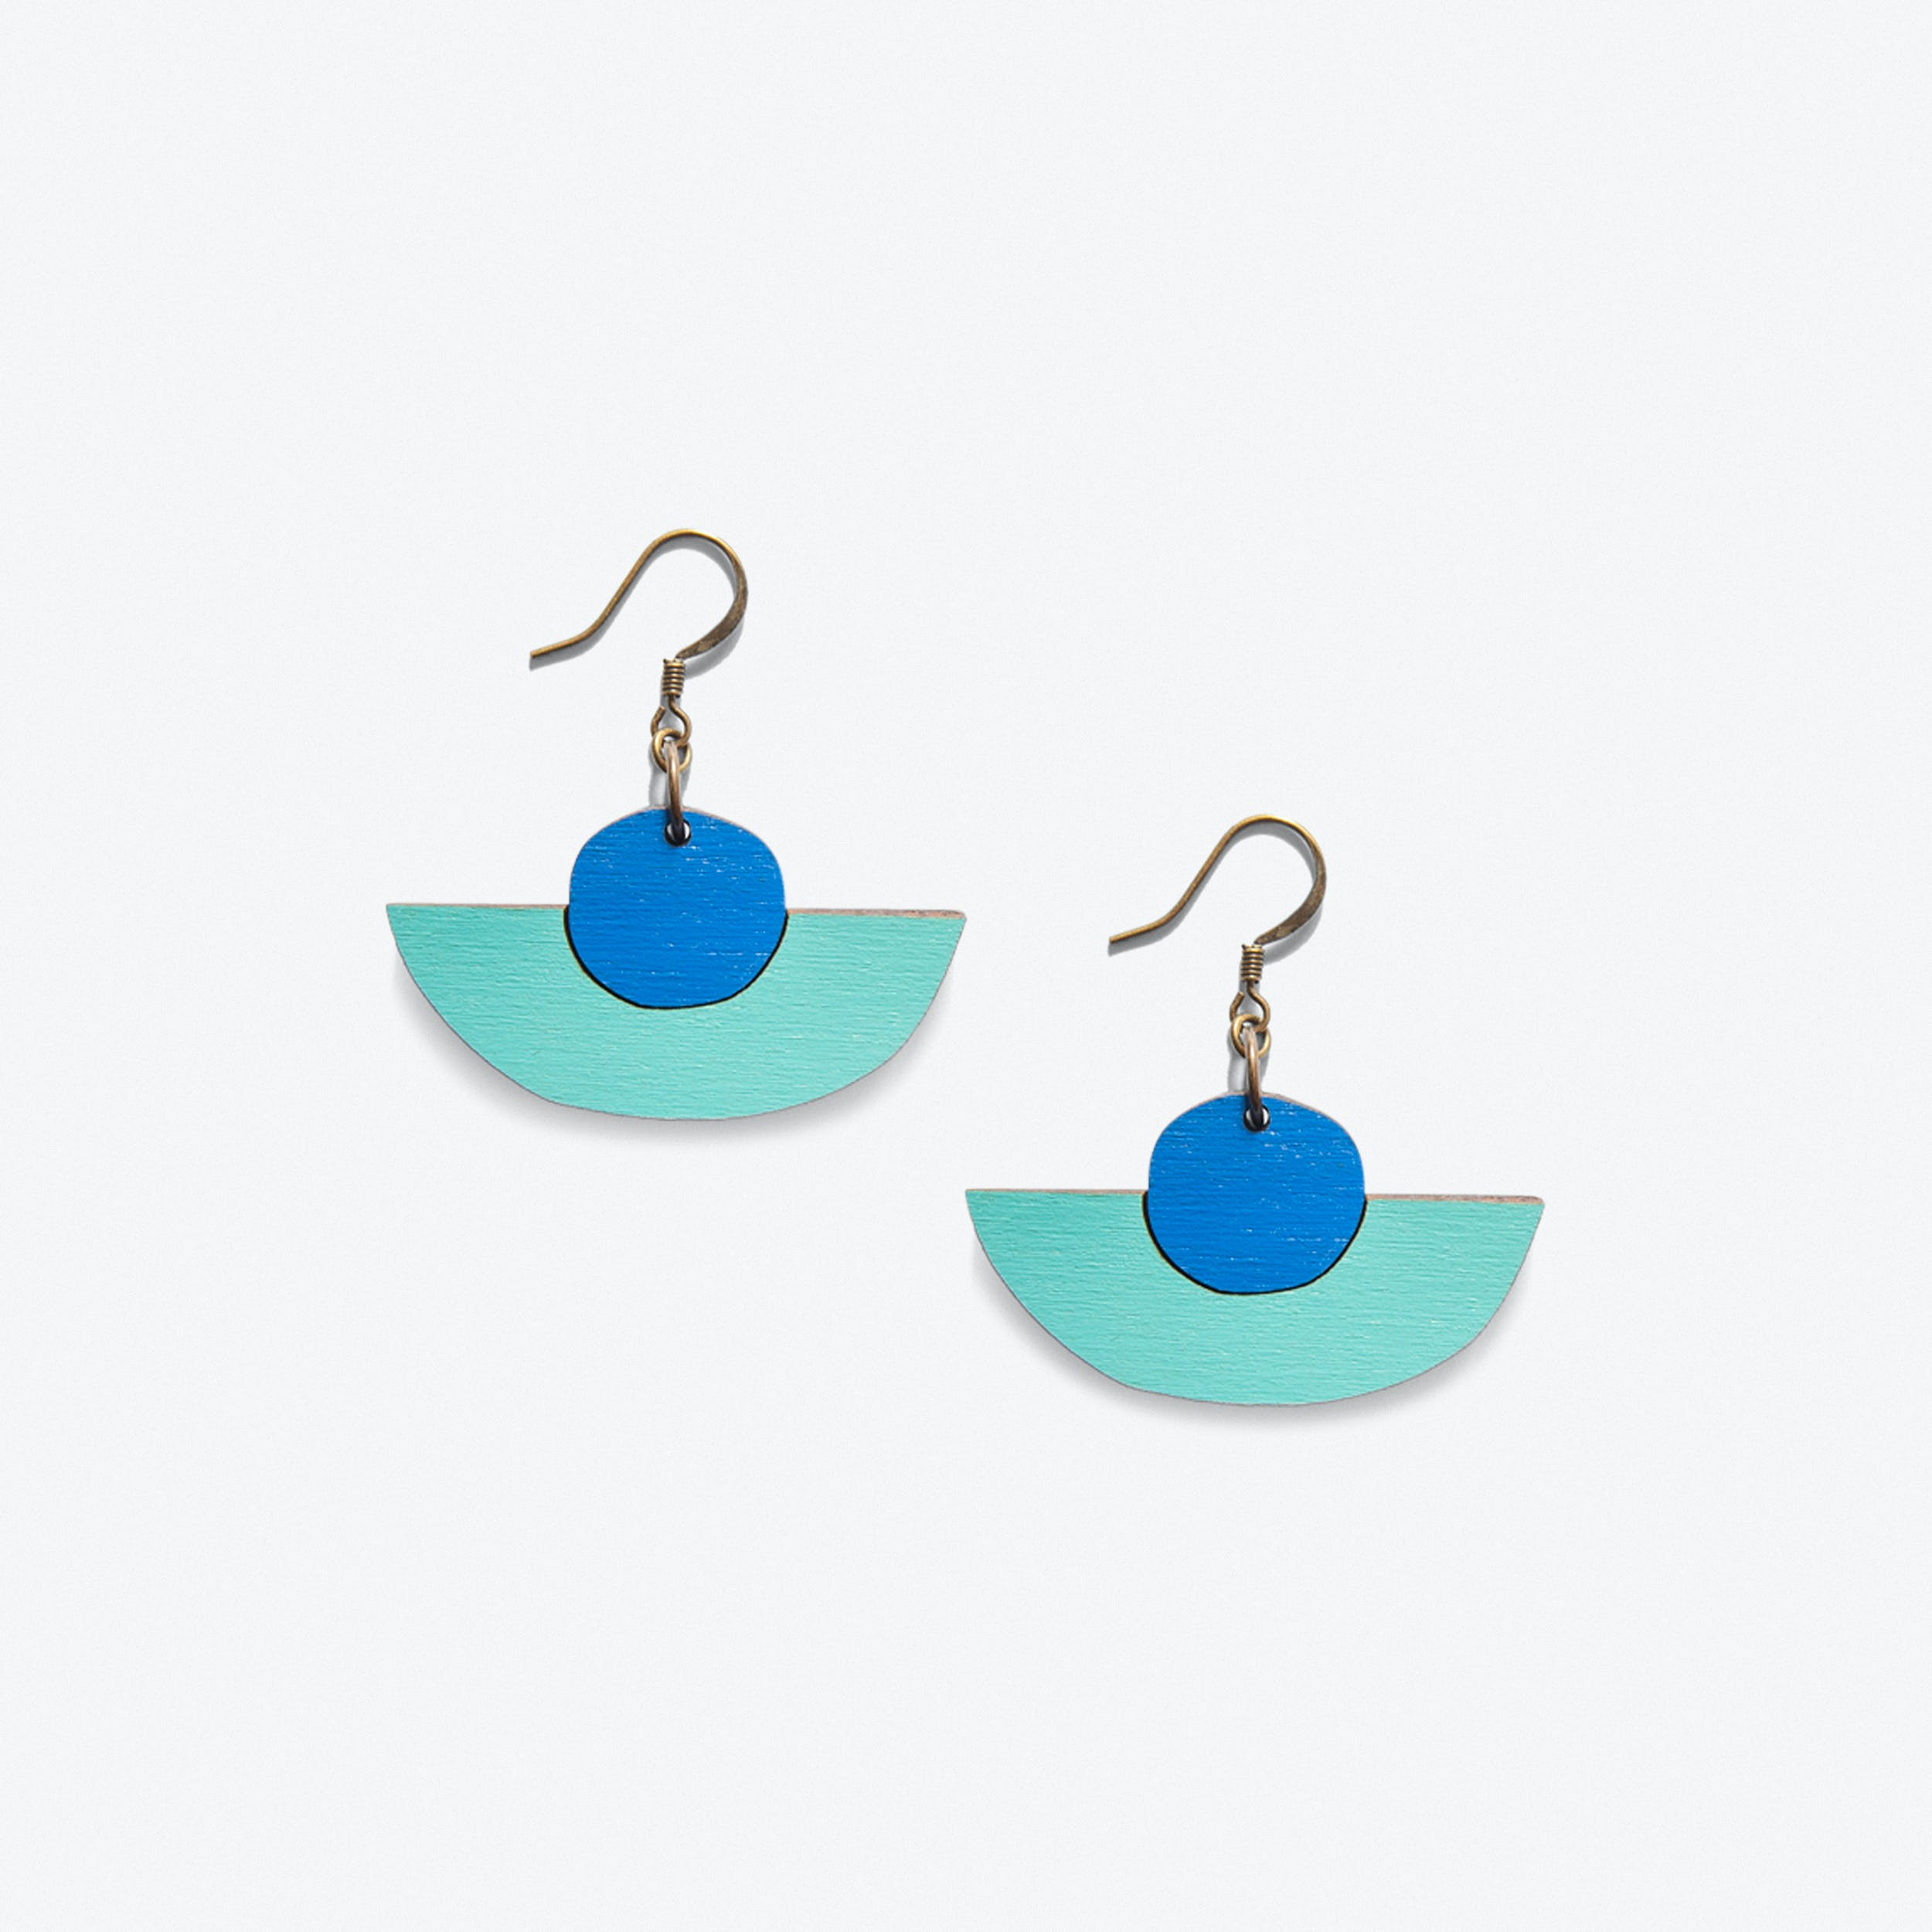 Uhde Earrings In Blue